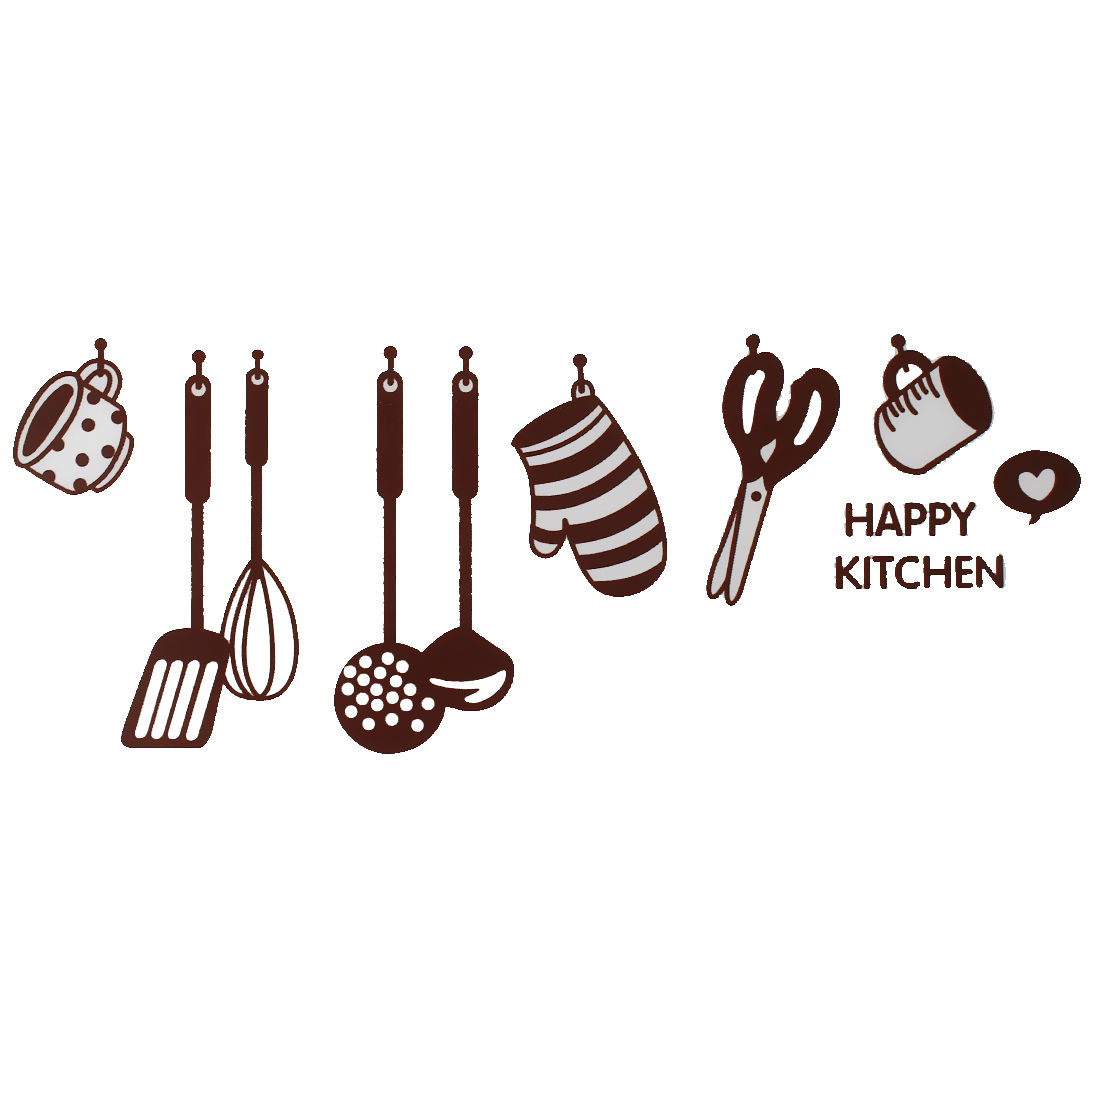 Home Decor Kitchen Tool Pattern Removable Wall Decor Sticker Wallpaper Mural